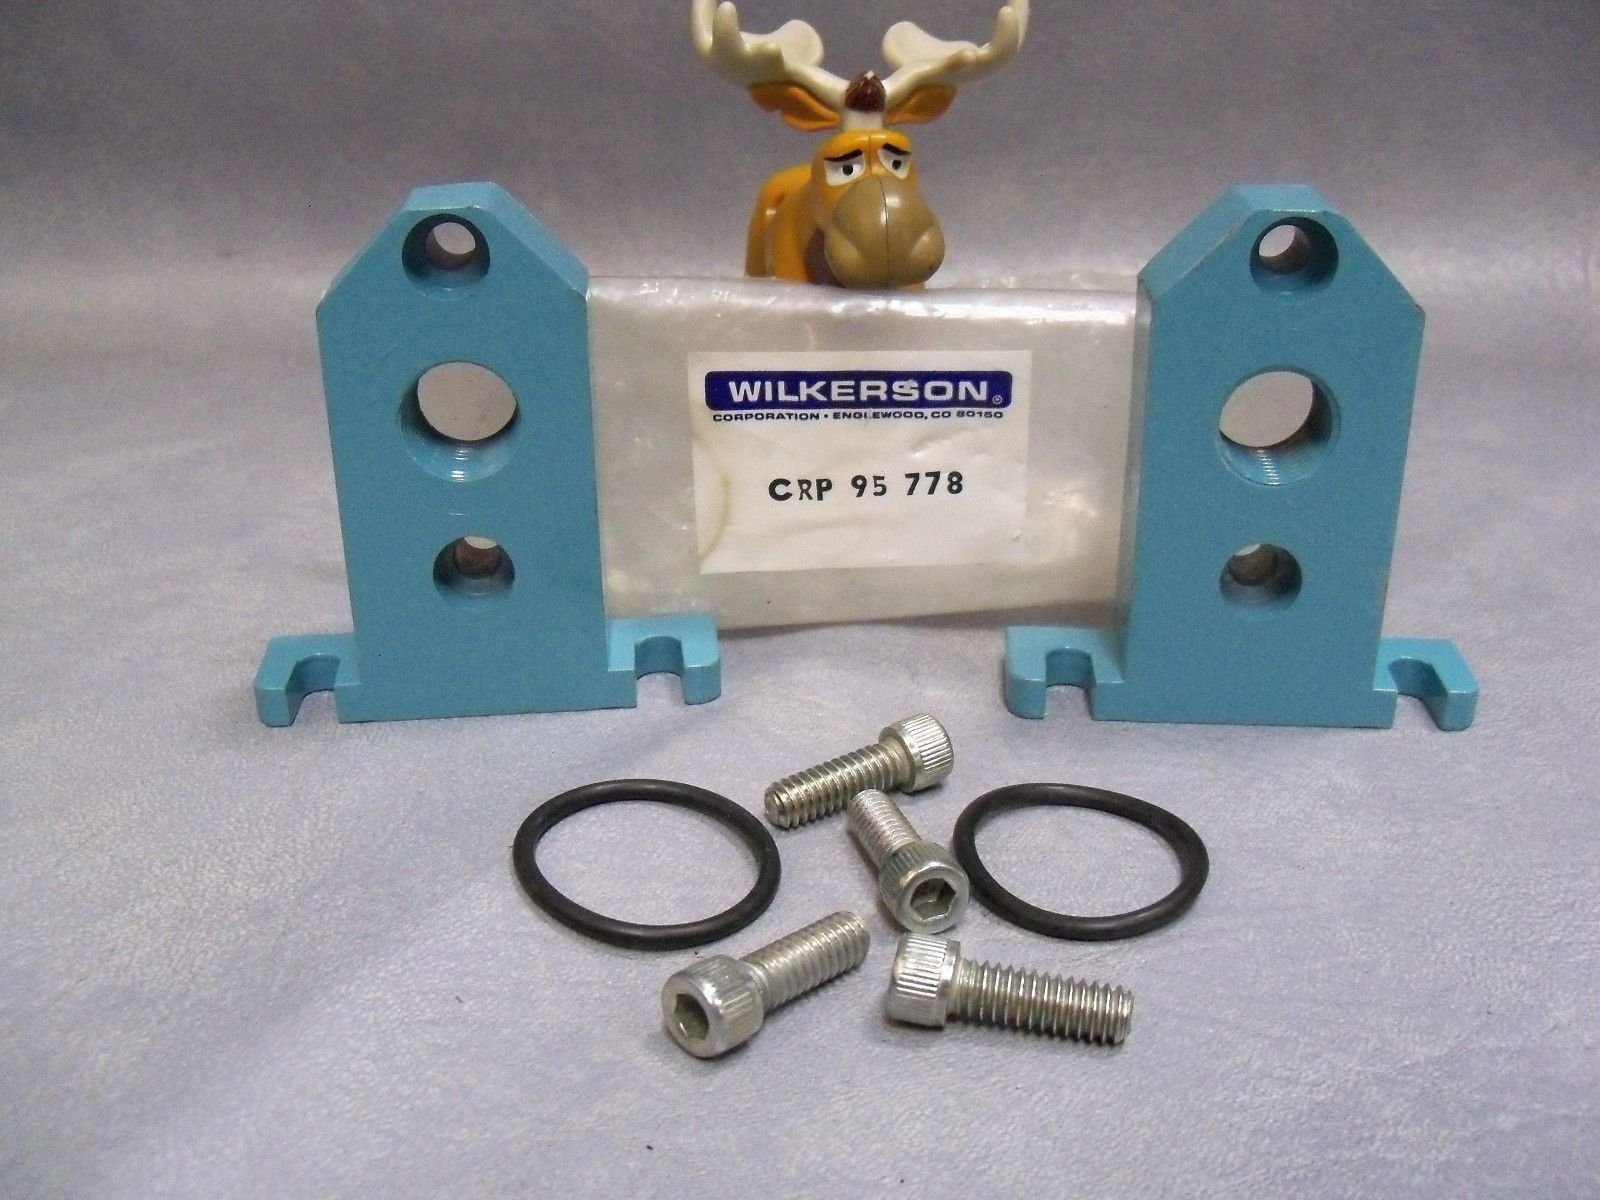 CRP-95-778 Wilkerson CRP 95 778 Combination/Consolidation Repair Kit CRP95778